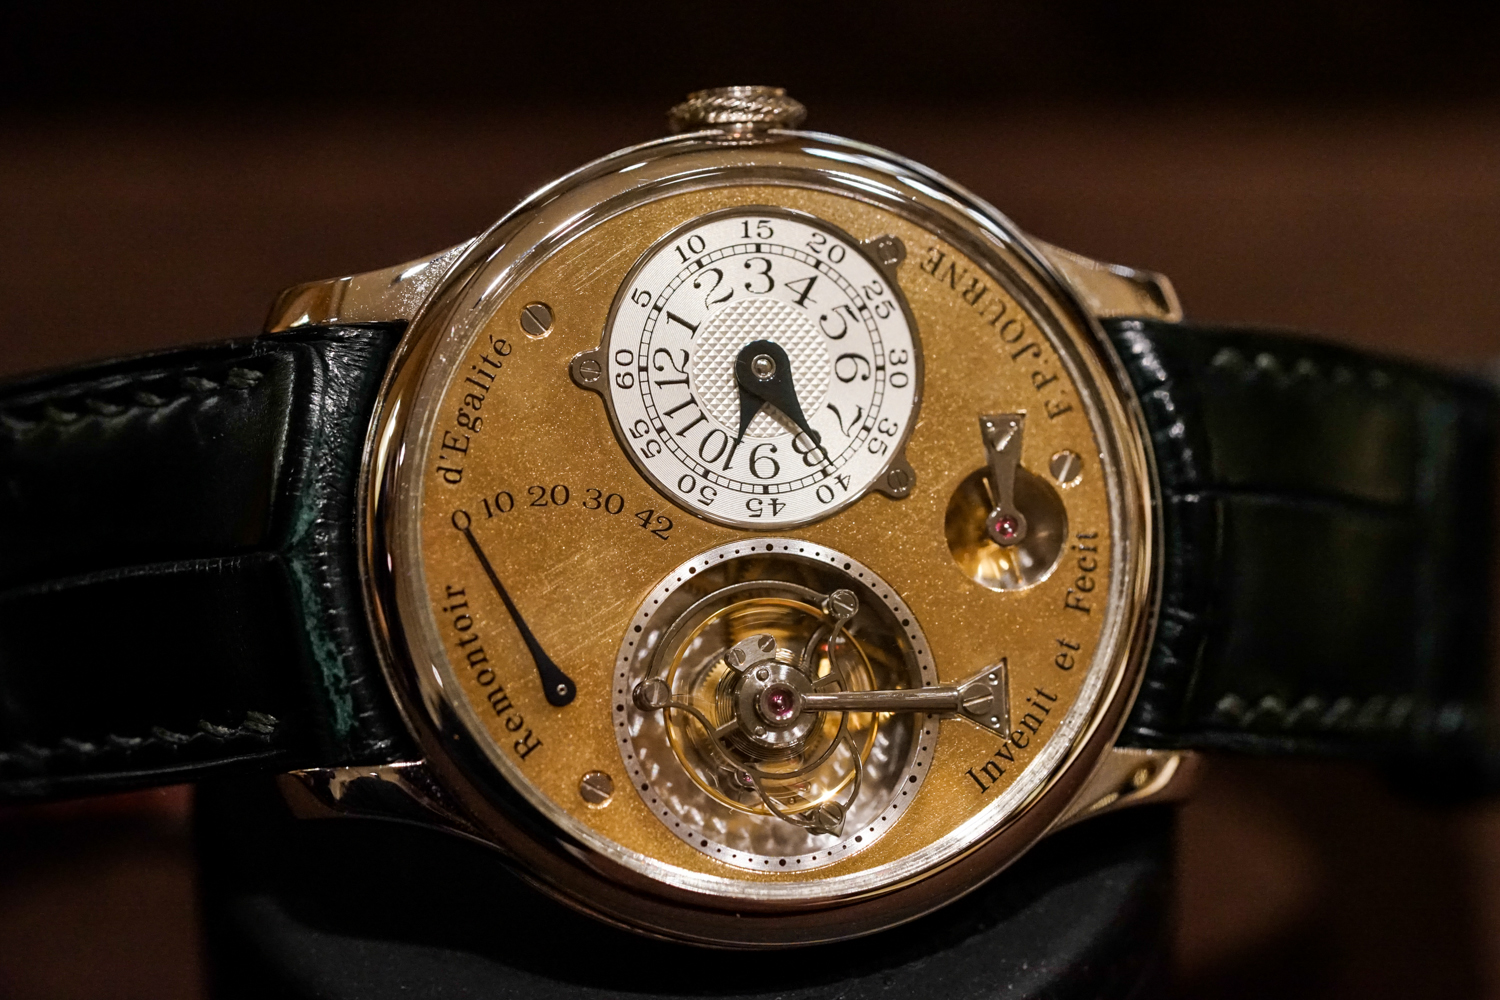 FP Journe Tourbillon Souverain-2.jpg